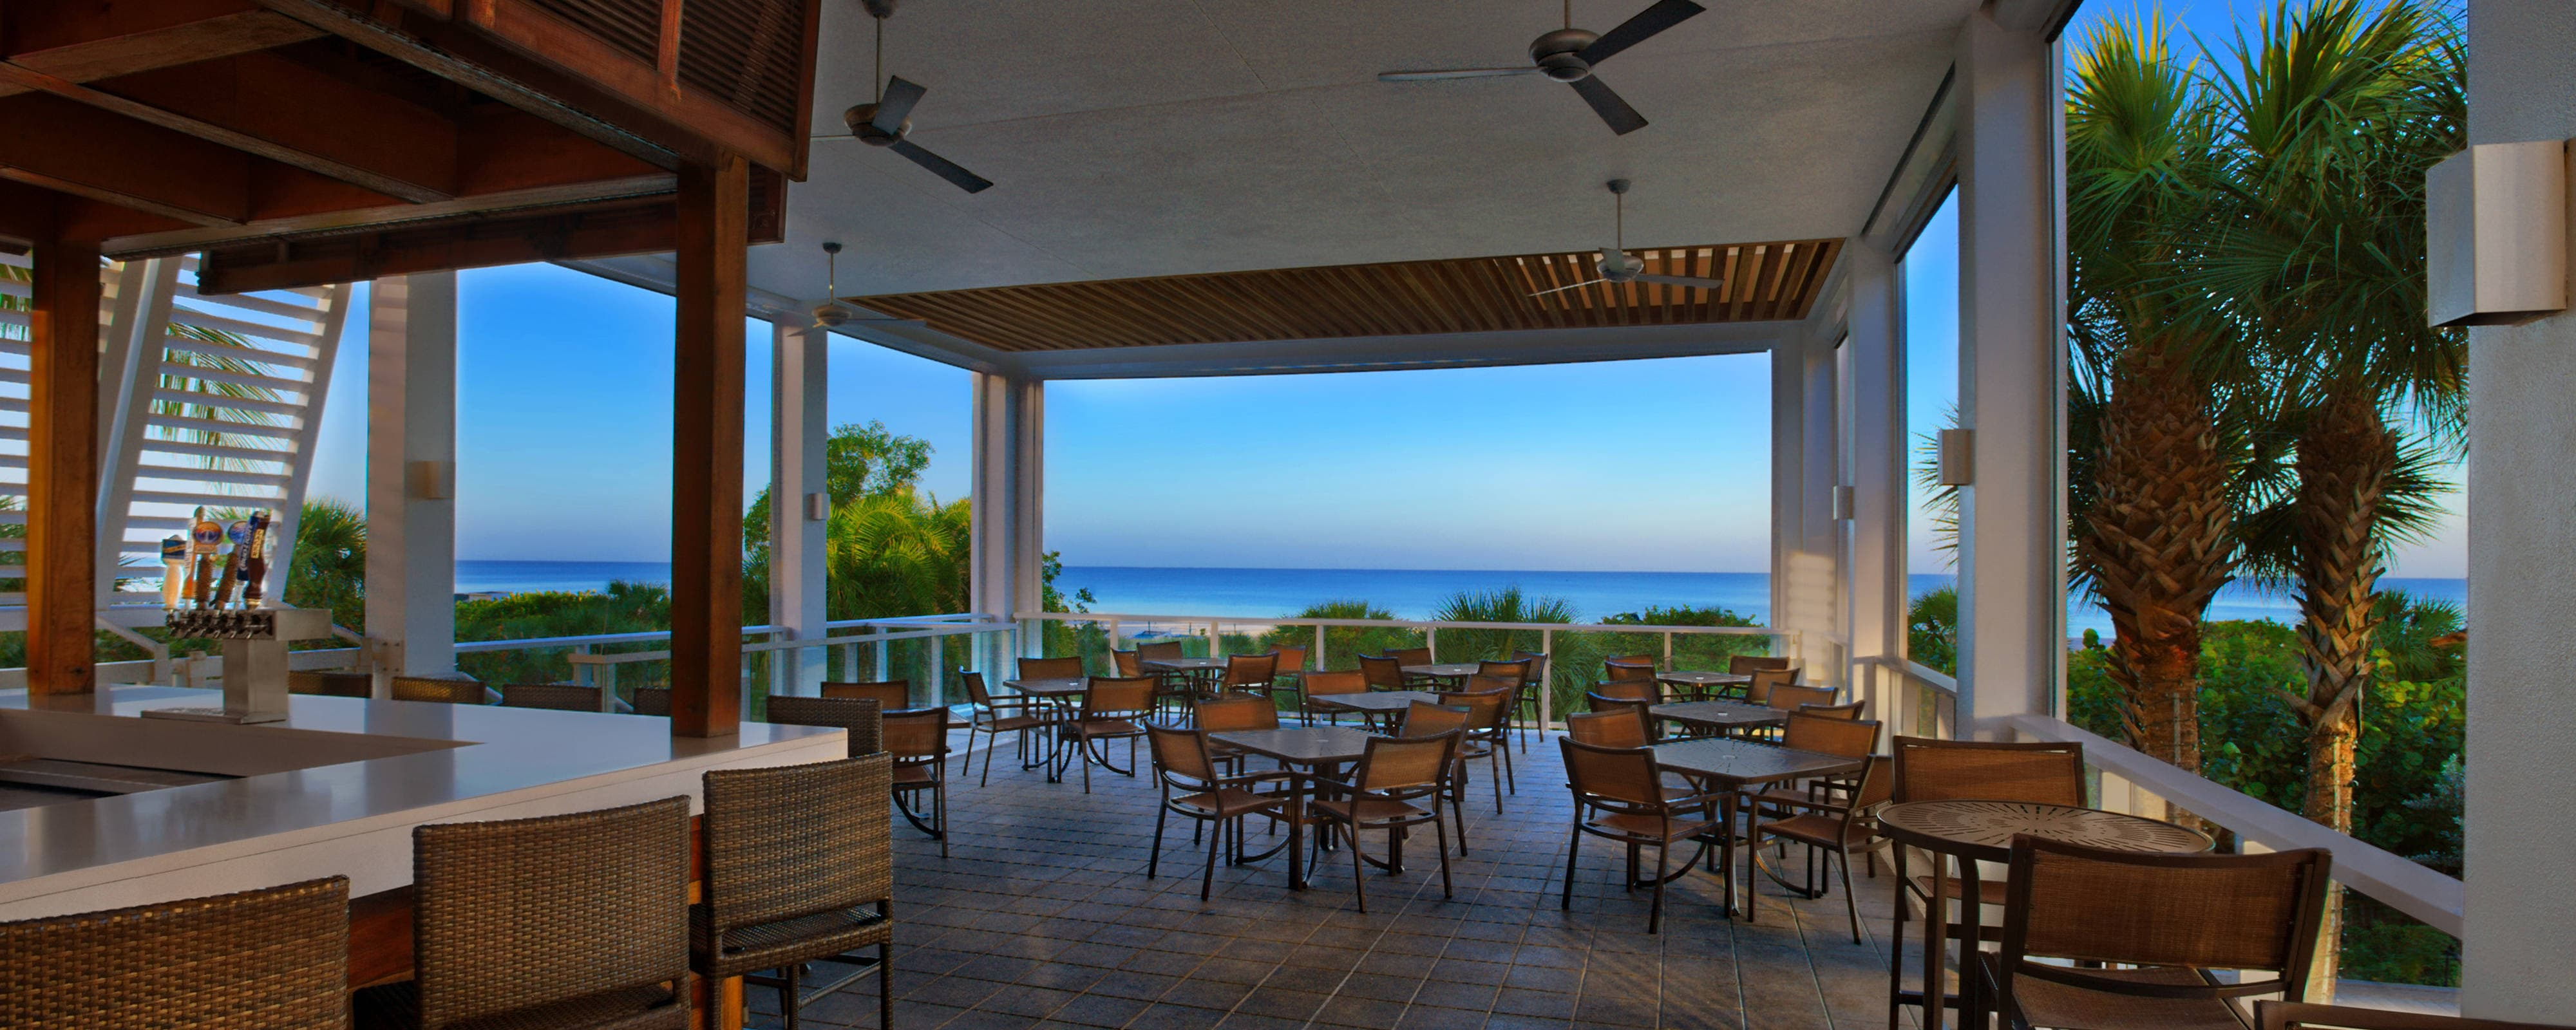 Waterfront Dining Marco Island Marco Island Waterfront Restaurants